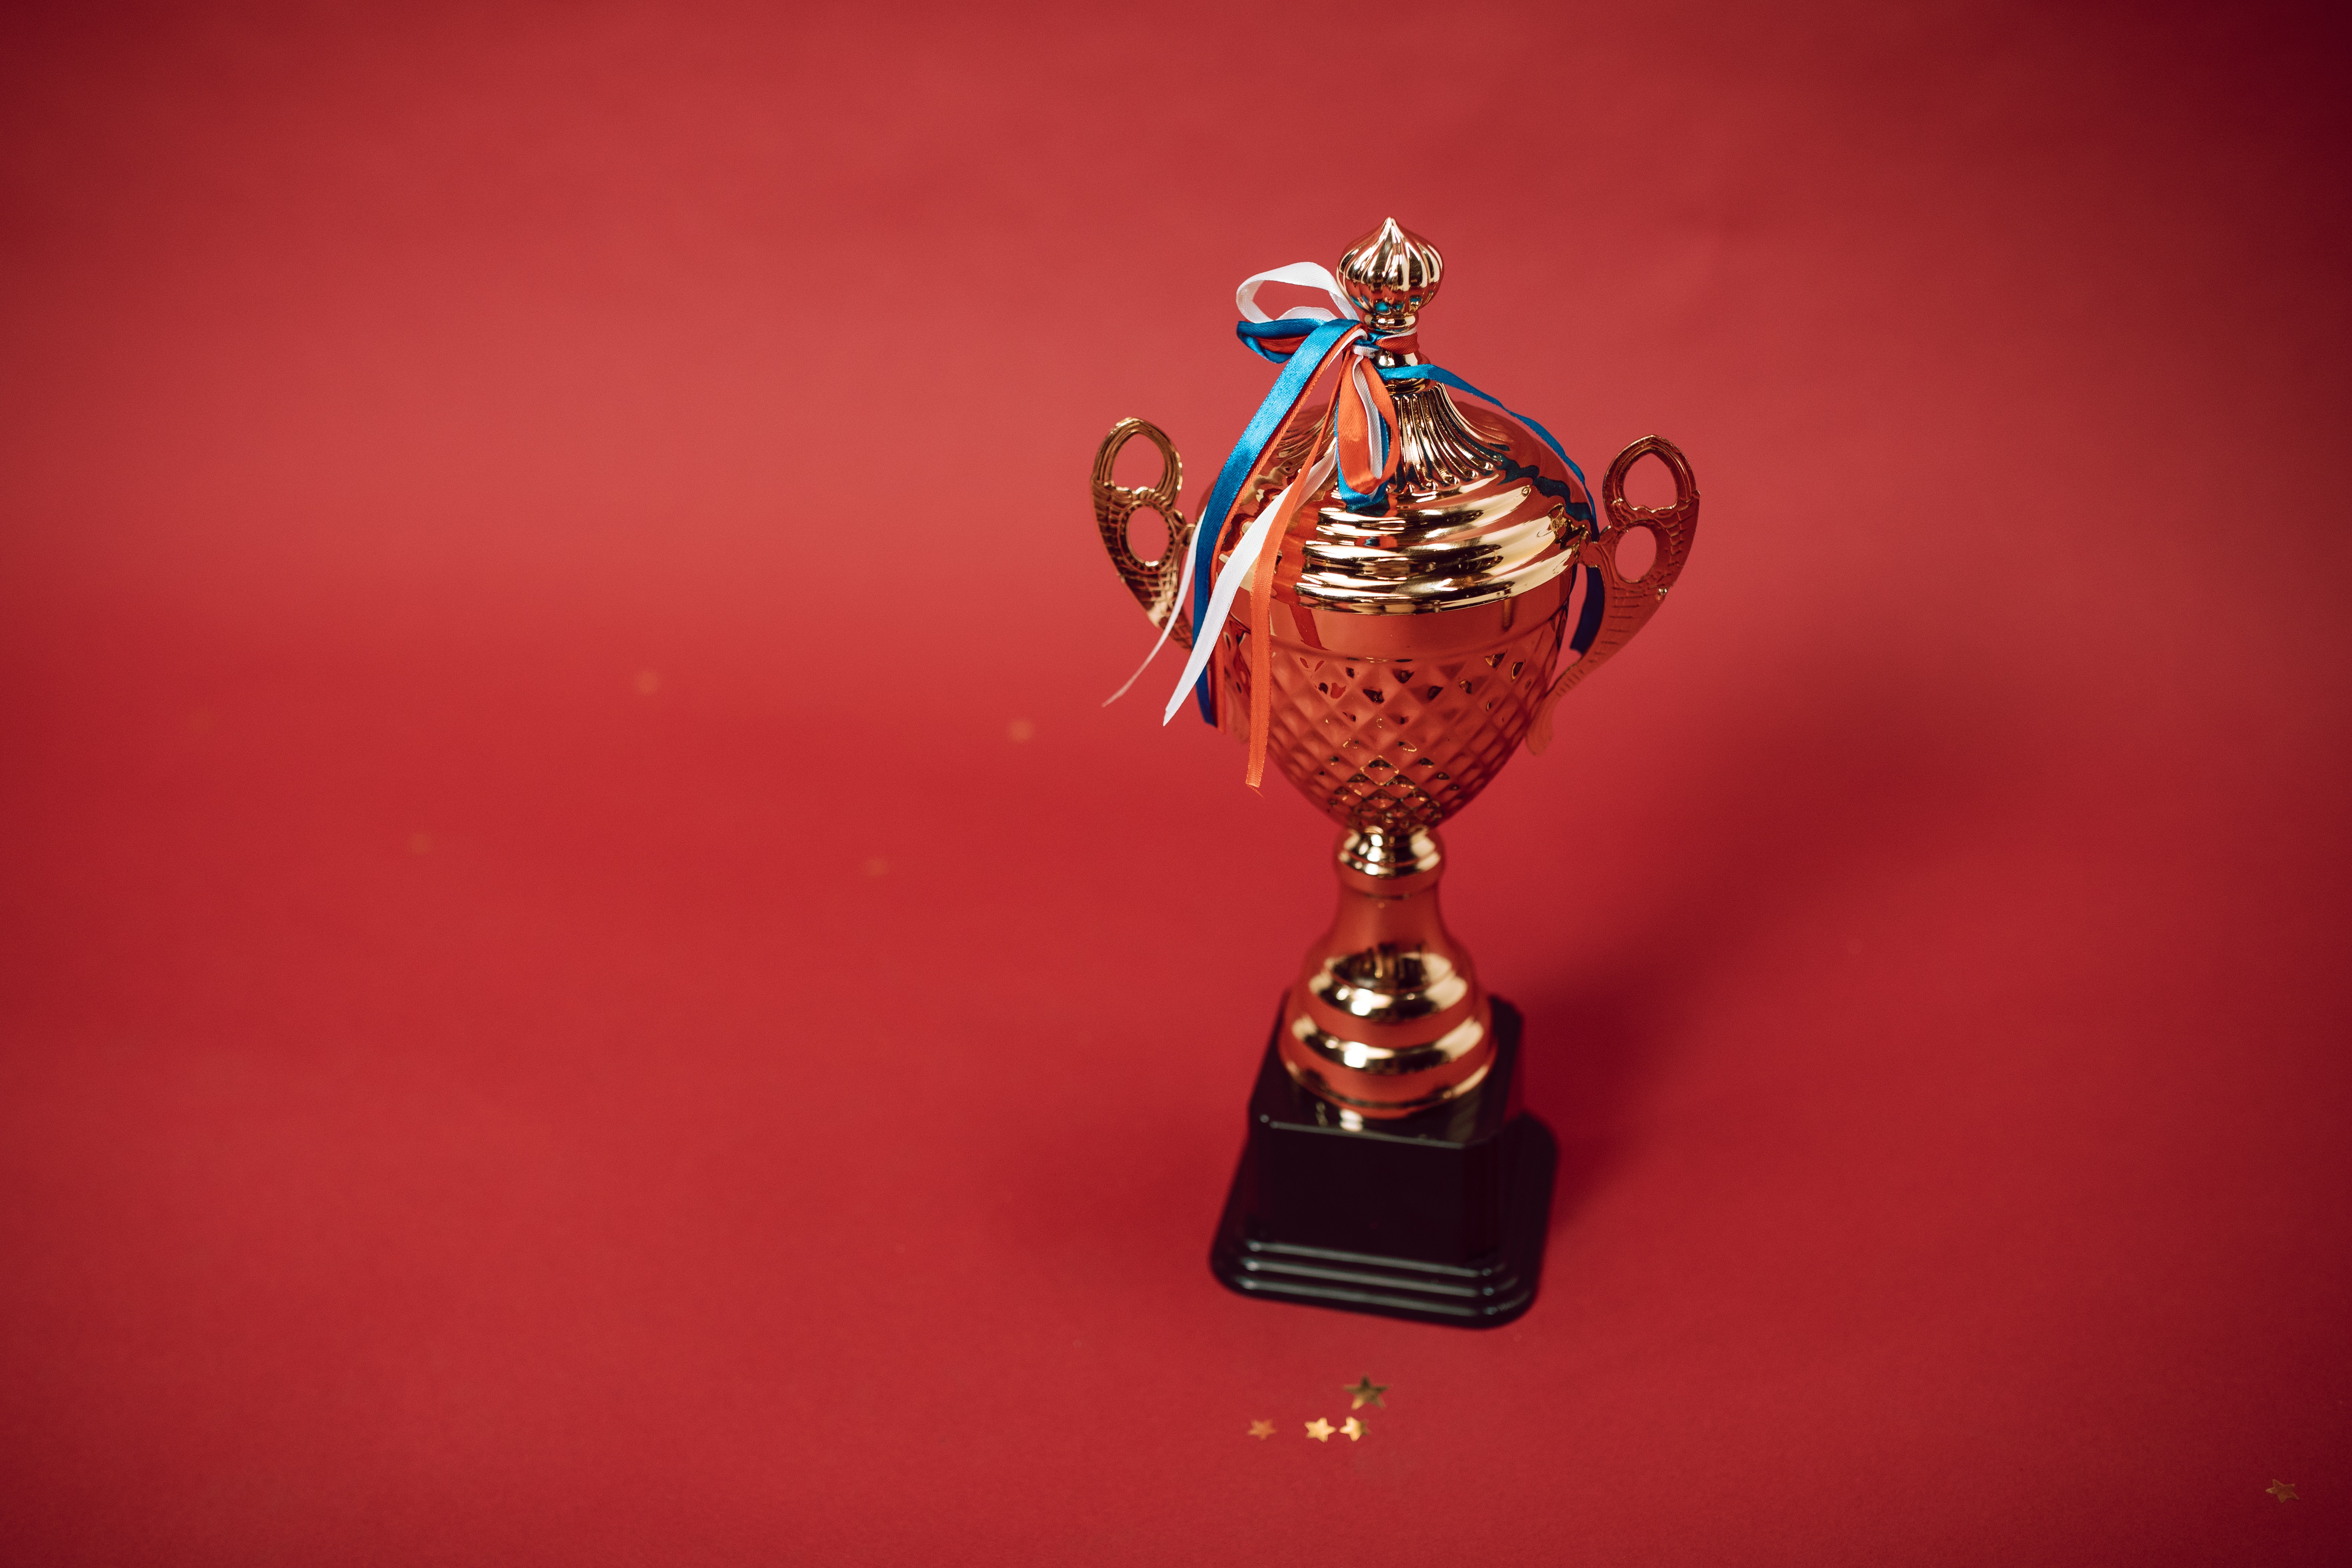 small-trophy-on-red-background